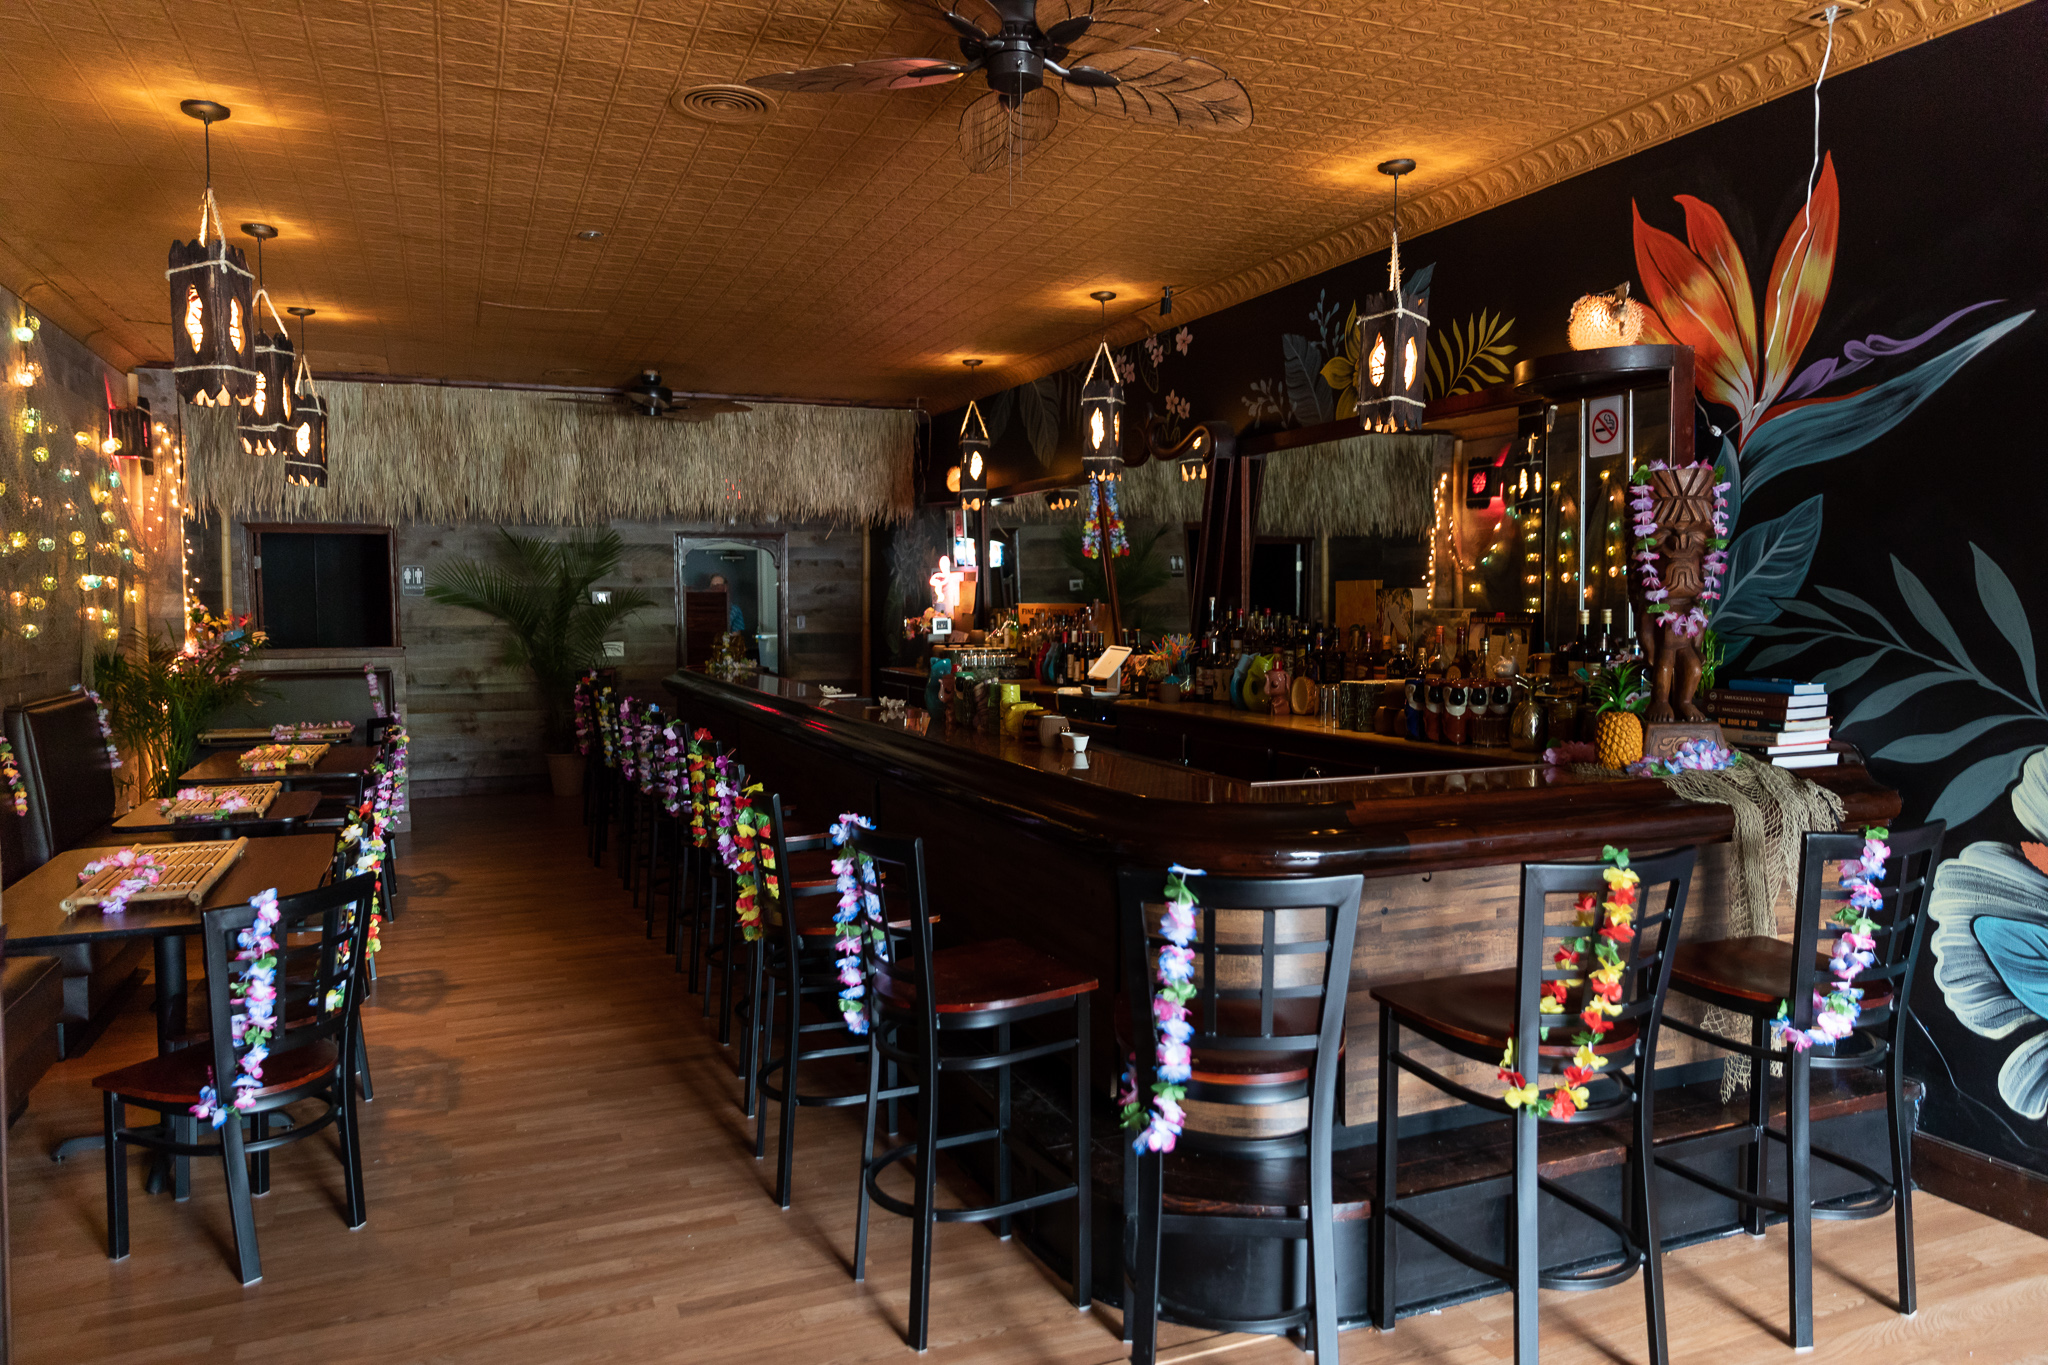 Lost River Tiki Bar's interior including the bar and a mural of flowers